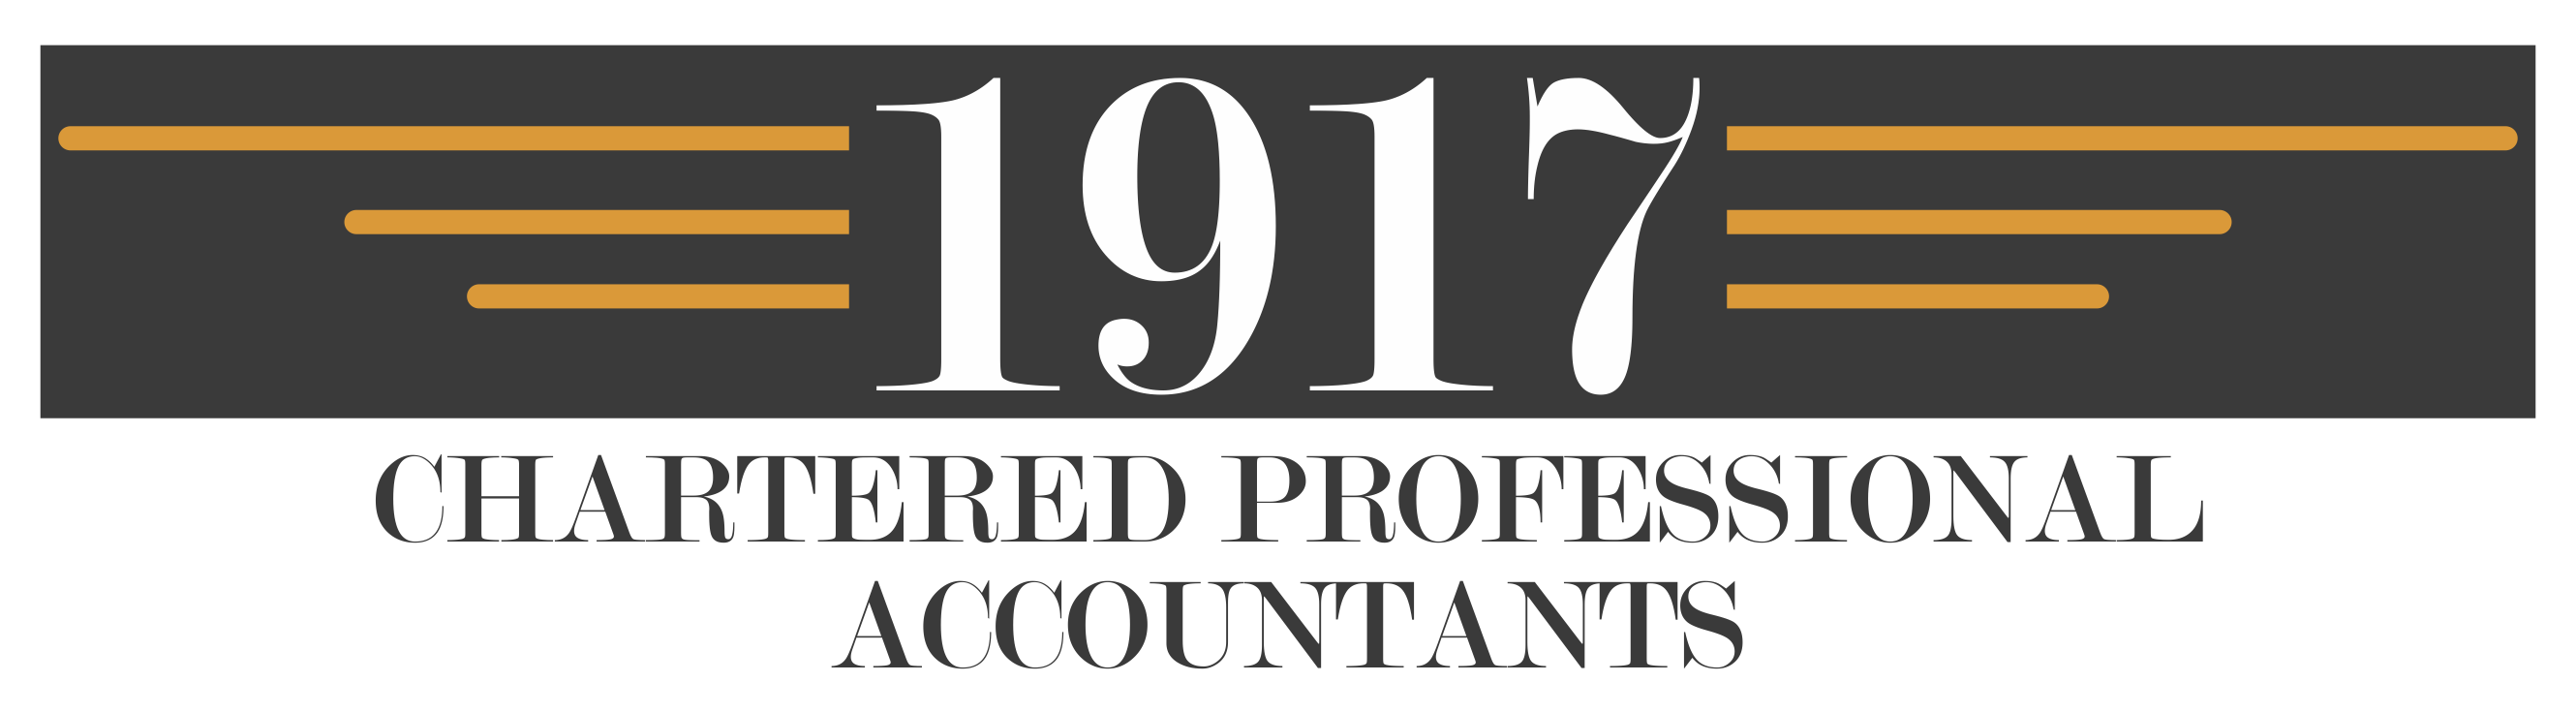 1917 Chartered Professional Accountants (1917 CPA)